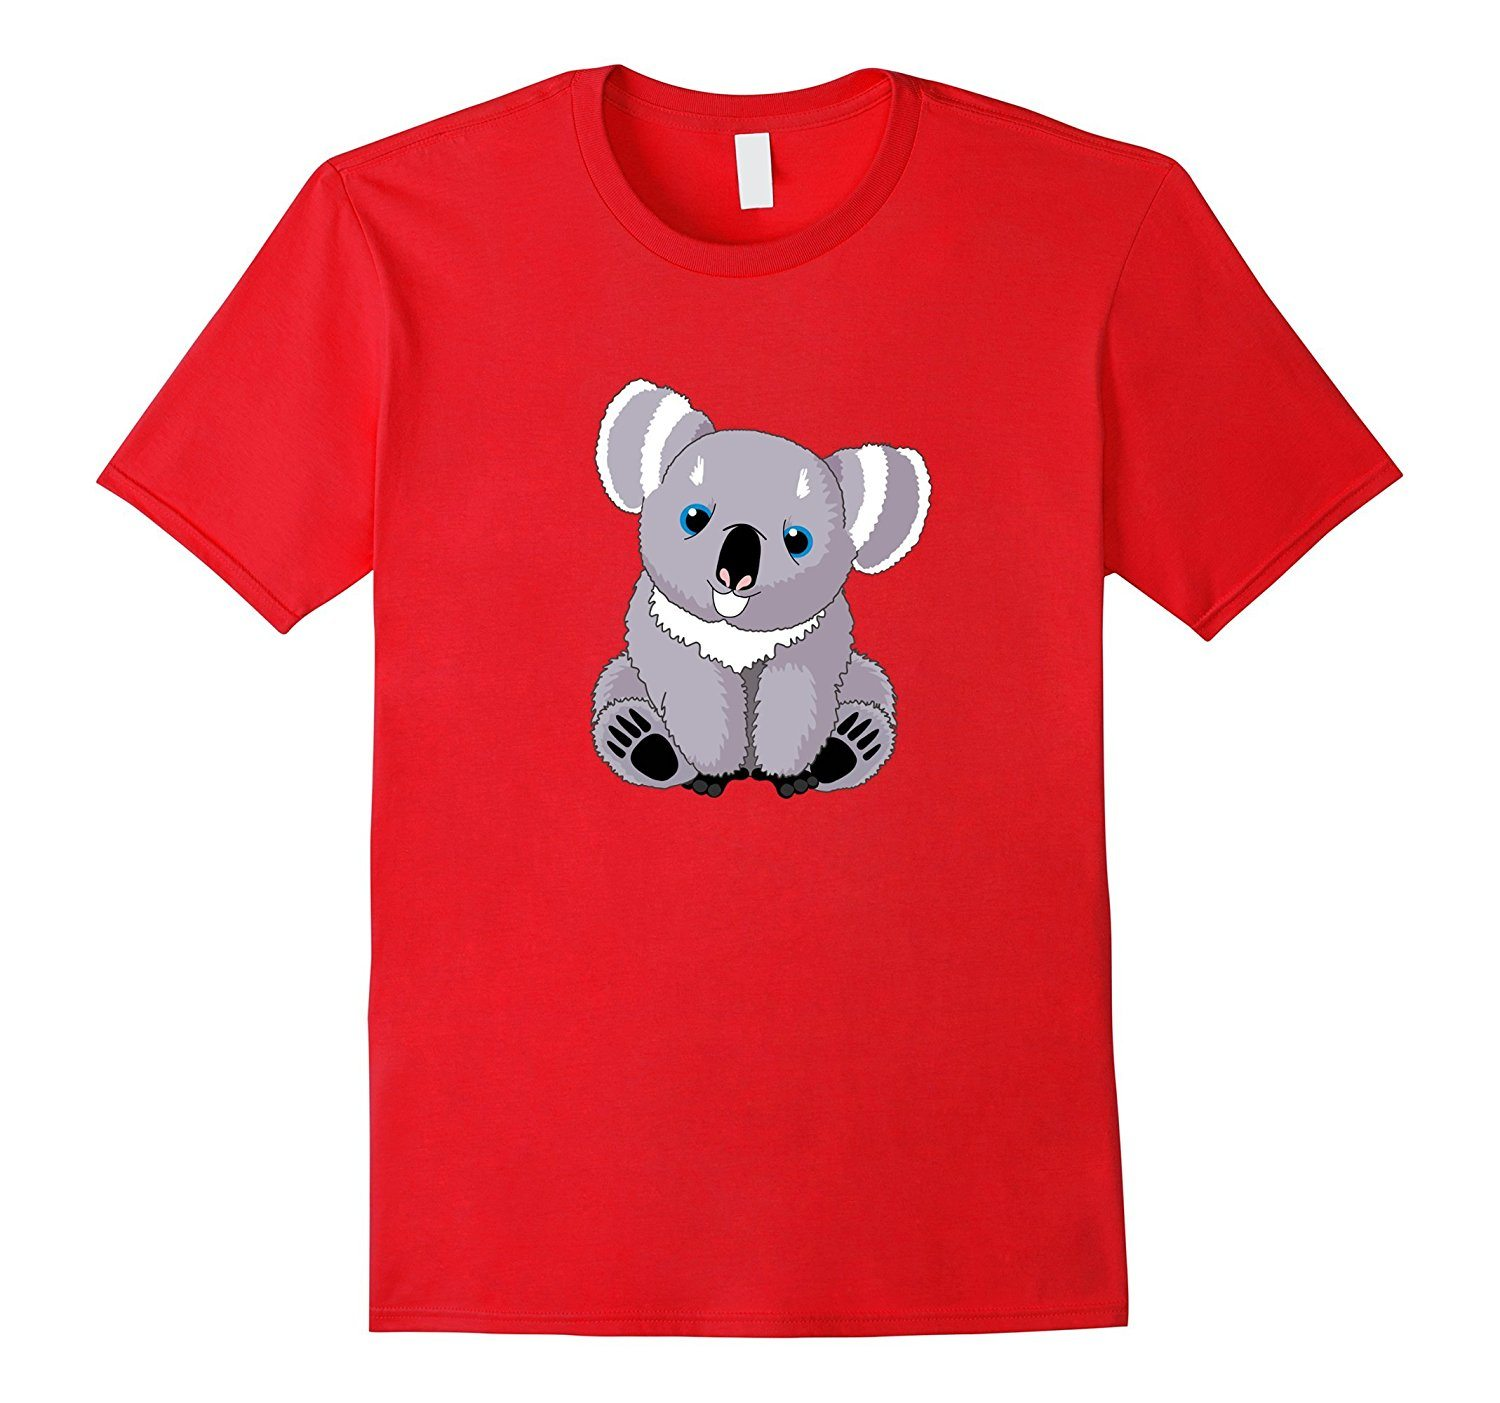 Koala Emoji T-shirt Emoticon Cute Koala Bear Smile Tshirt.